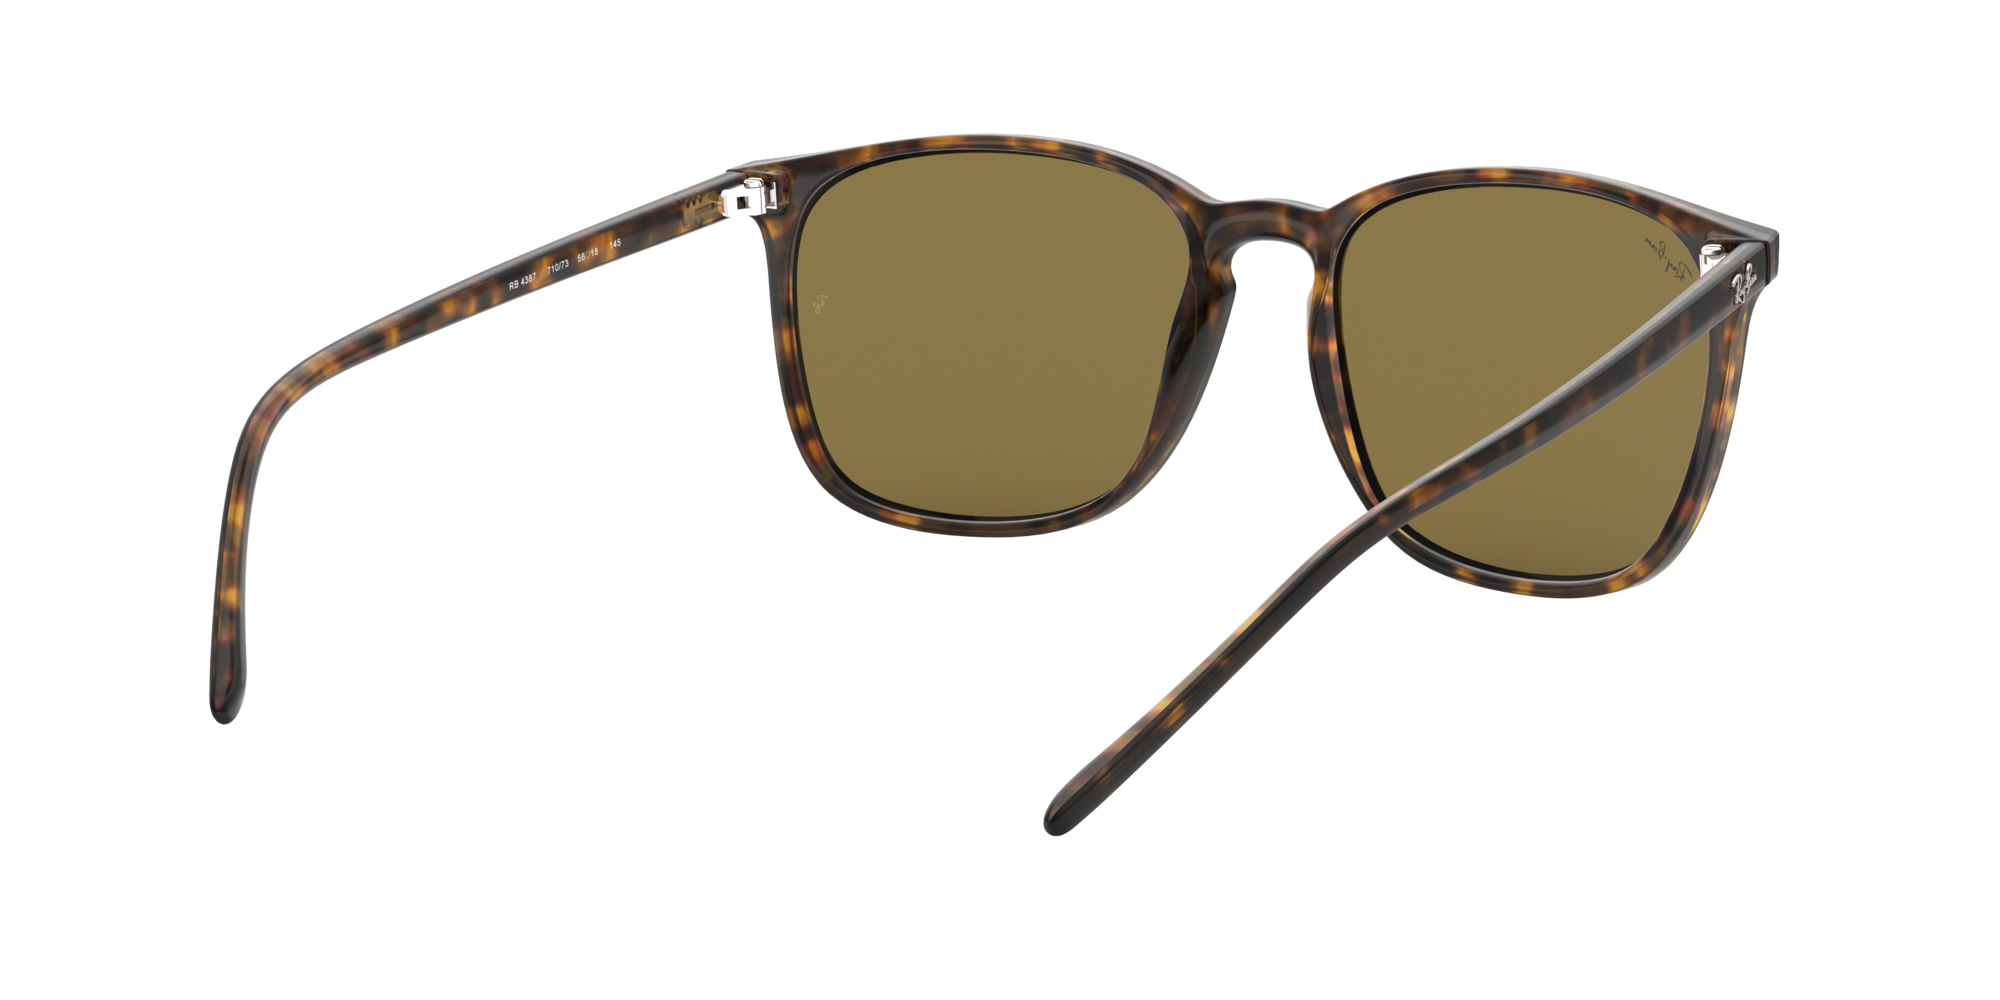 4c6338dba5c91 Sunglasses Ray-Ban RB4387 710 73 56-18 Tortoise Large